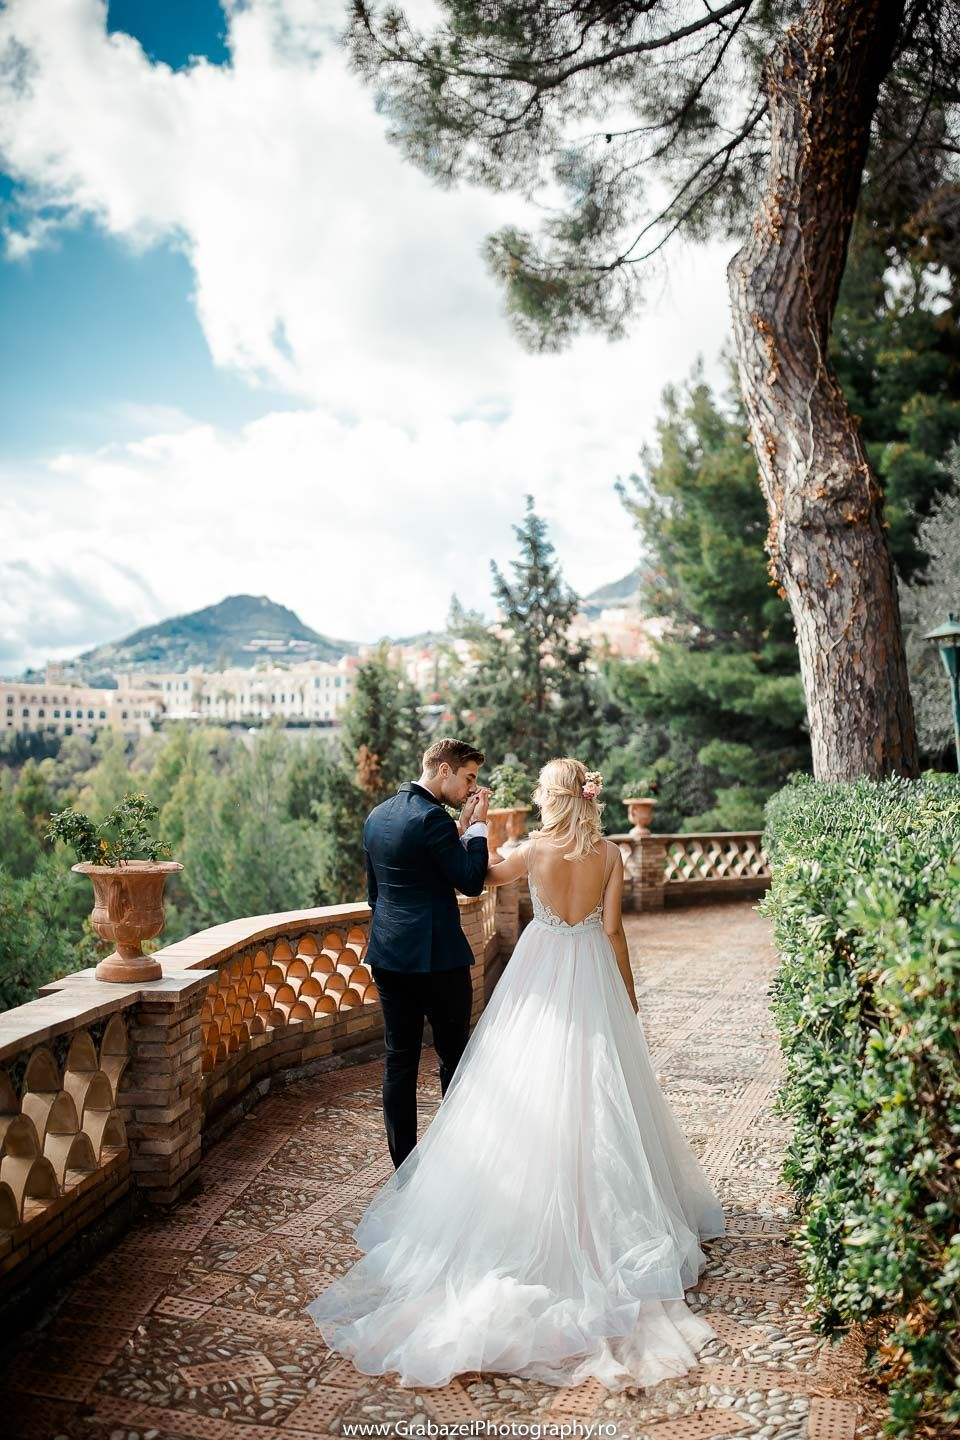 After Wedding Session In Sicily Bride And Groom Posing Ideas Grabazei Outdoorwedding Nuntai Italy Wedding Destination Wedding Inspiration Wedding Session